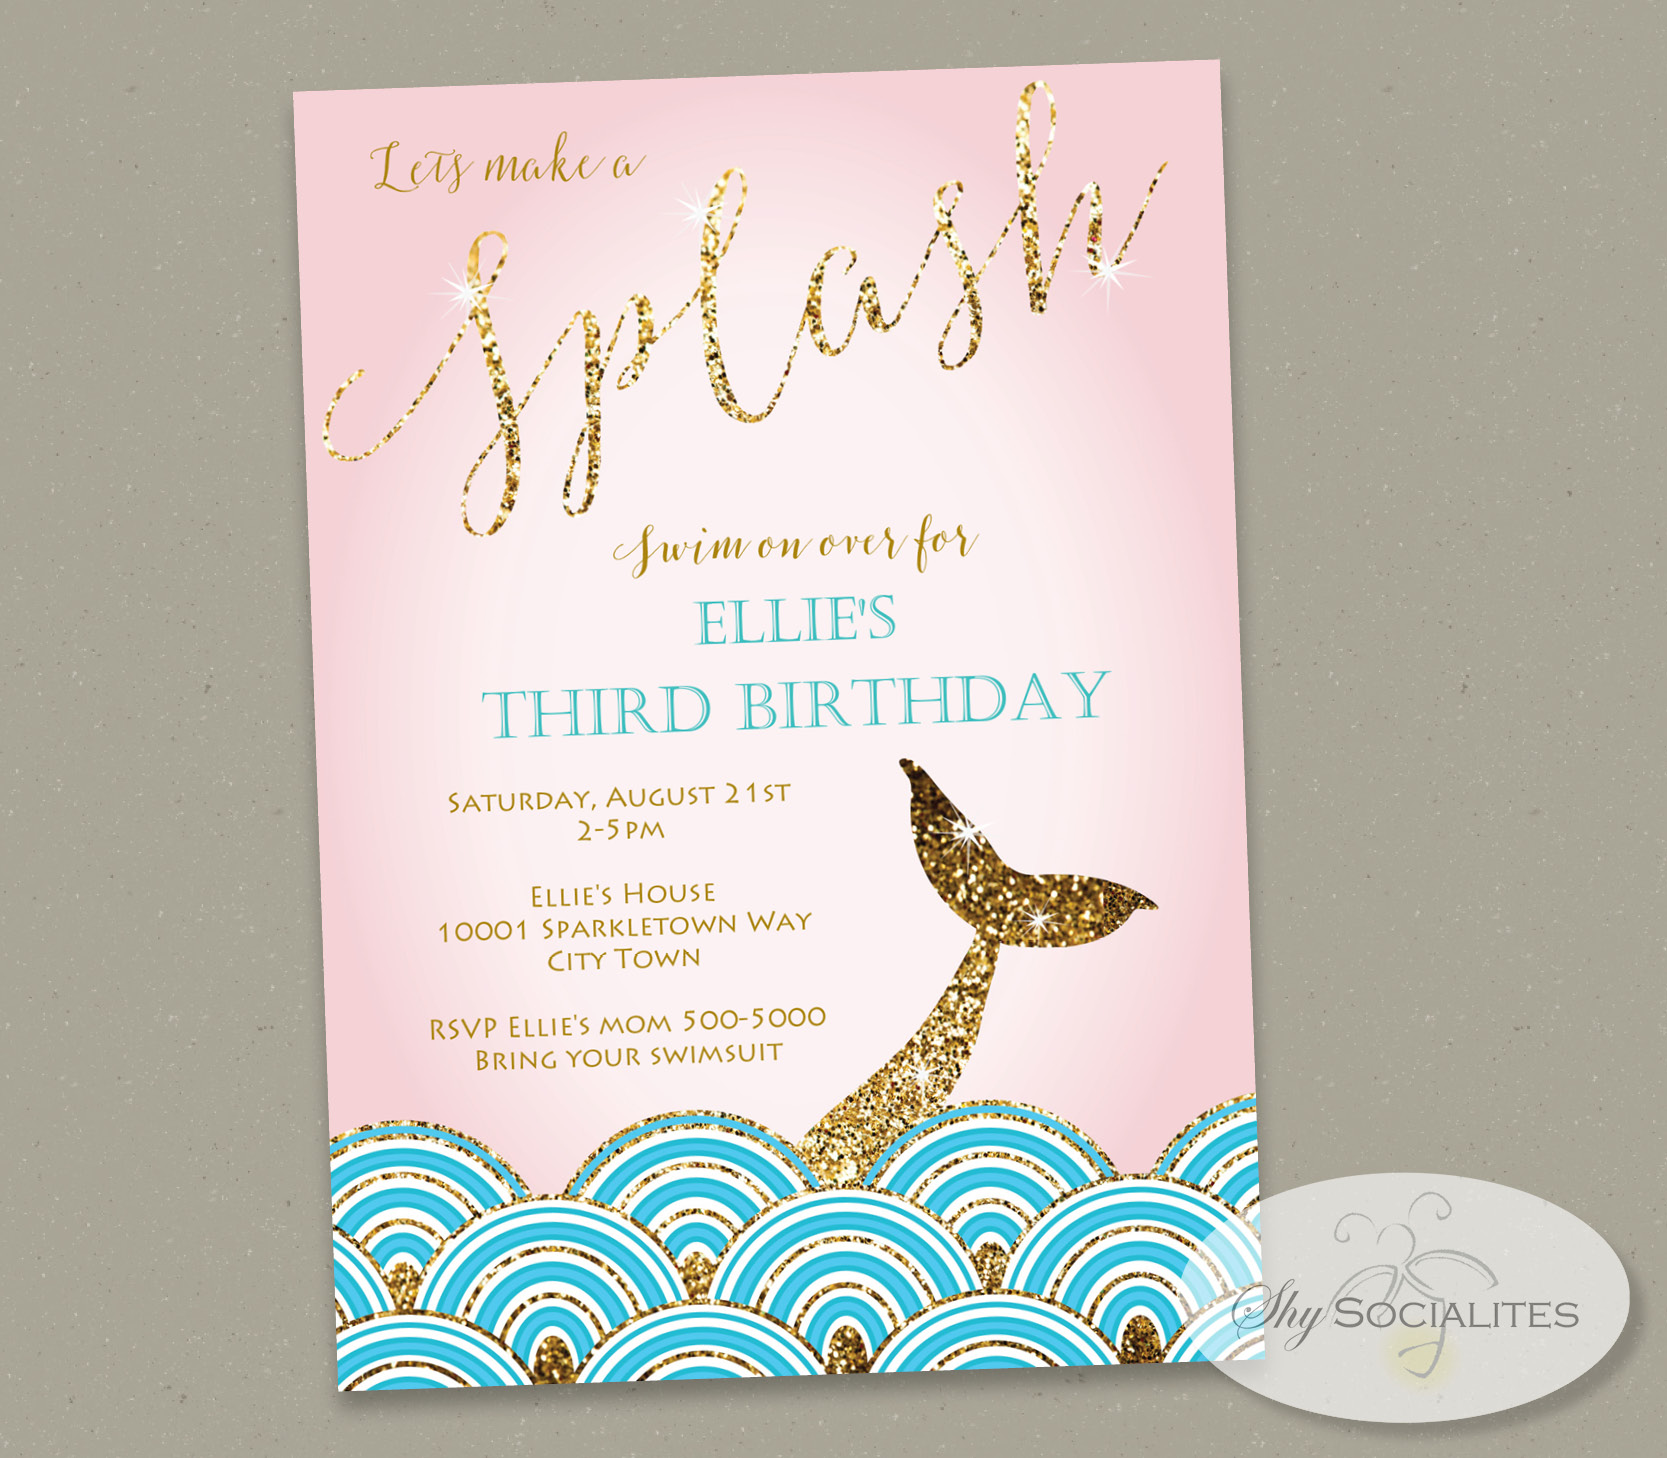 Gold Glitter Mermaid Tail Invitation Shy Socialites